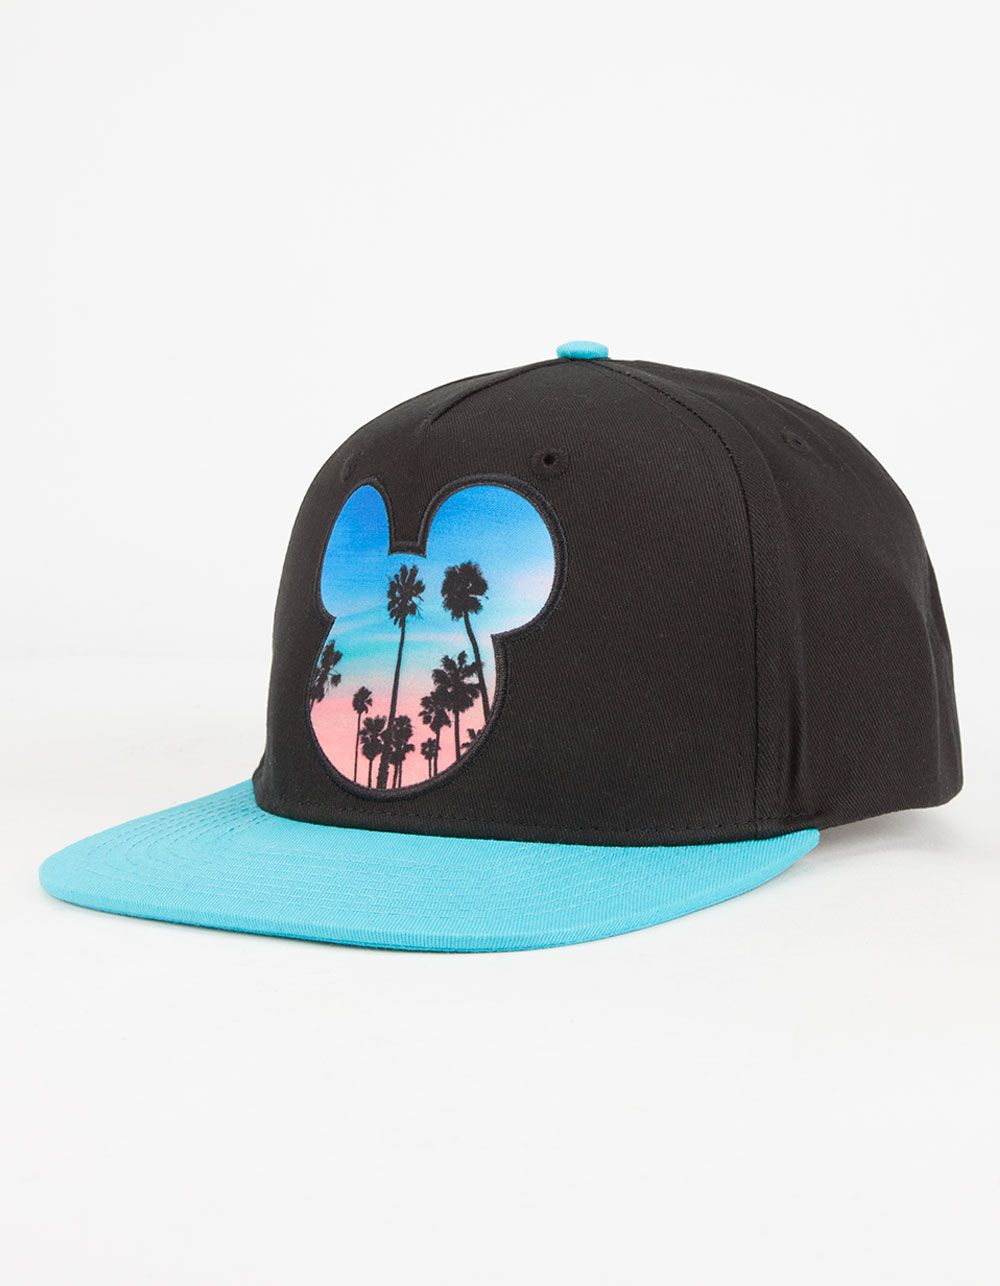 25a3617f5f4 Neff Disney Collection Palms Mickey Prime snapback hat. Sunset palms print  Mickey Mouse head silhouette